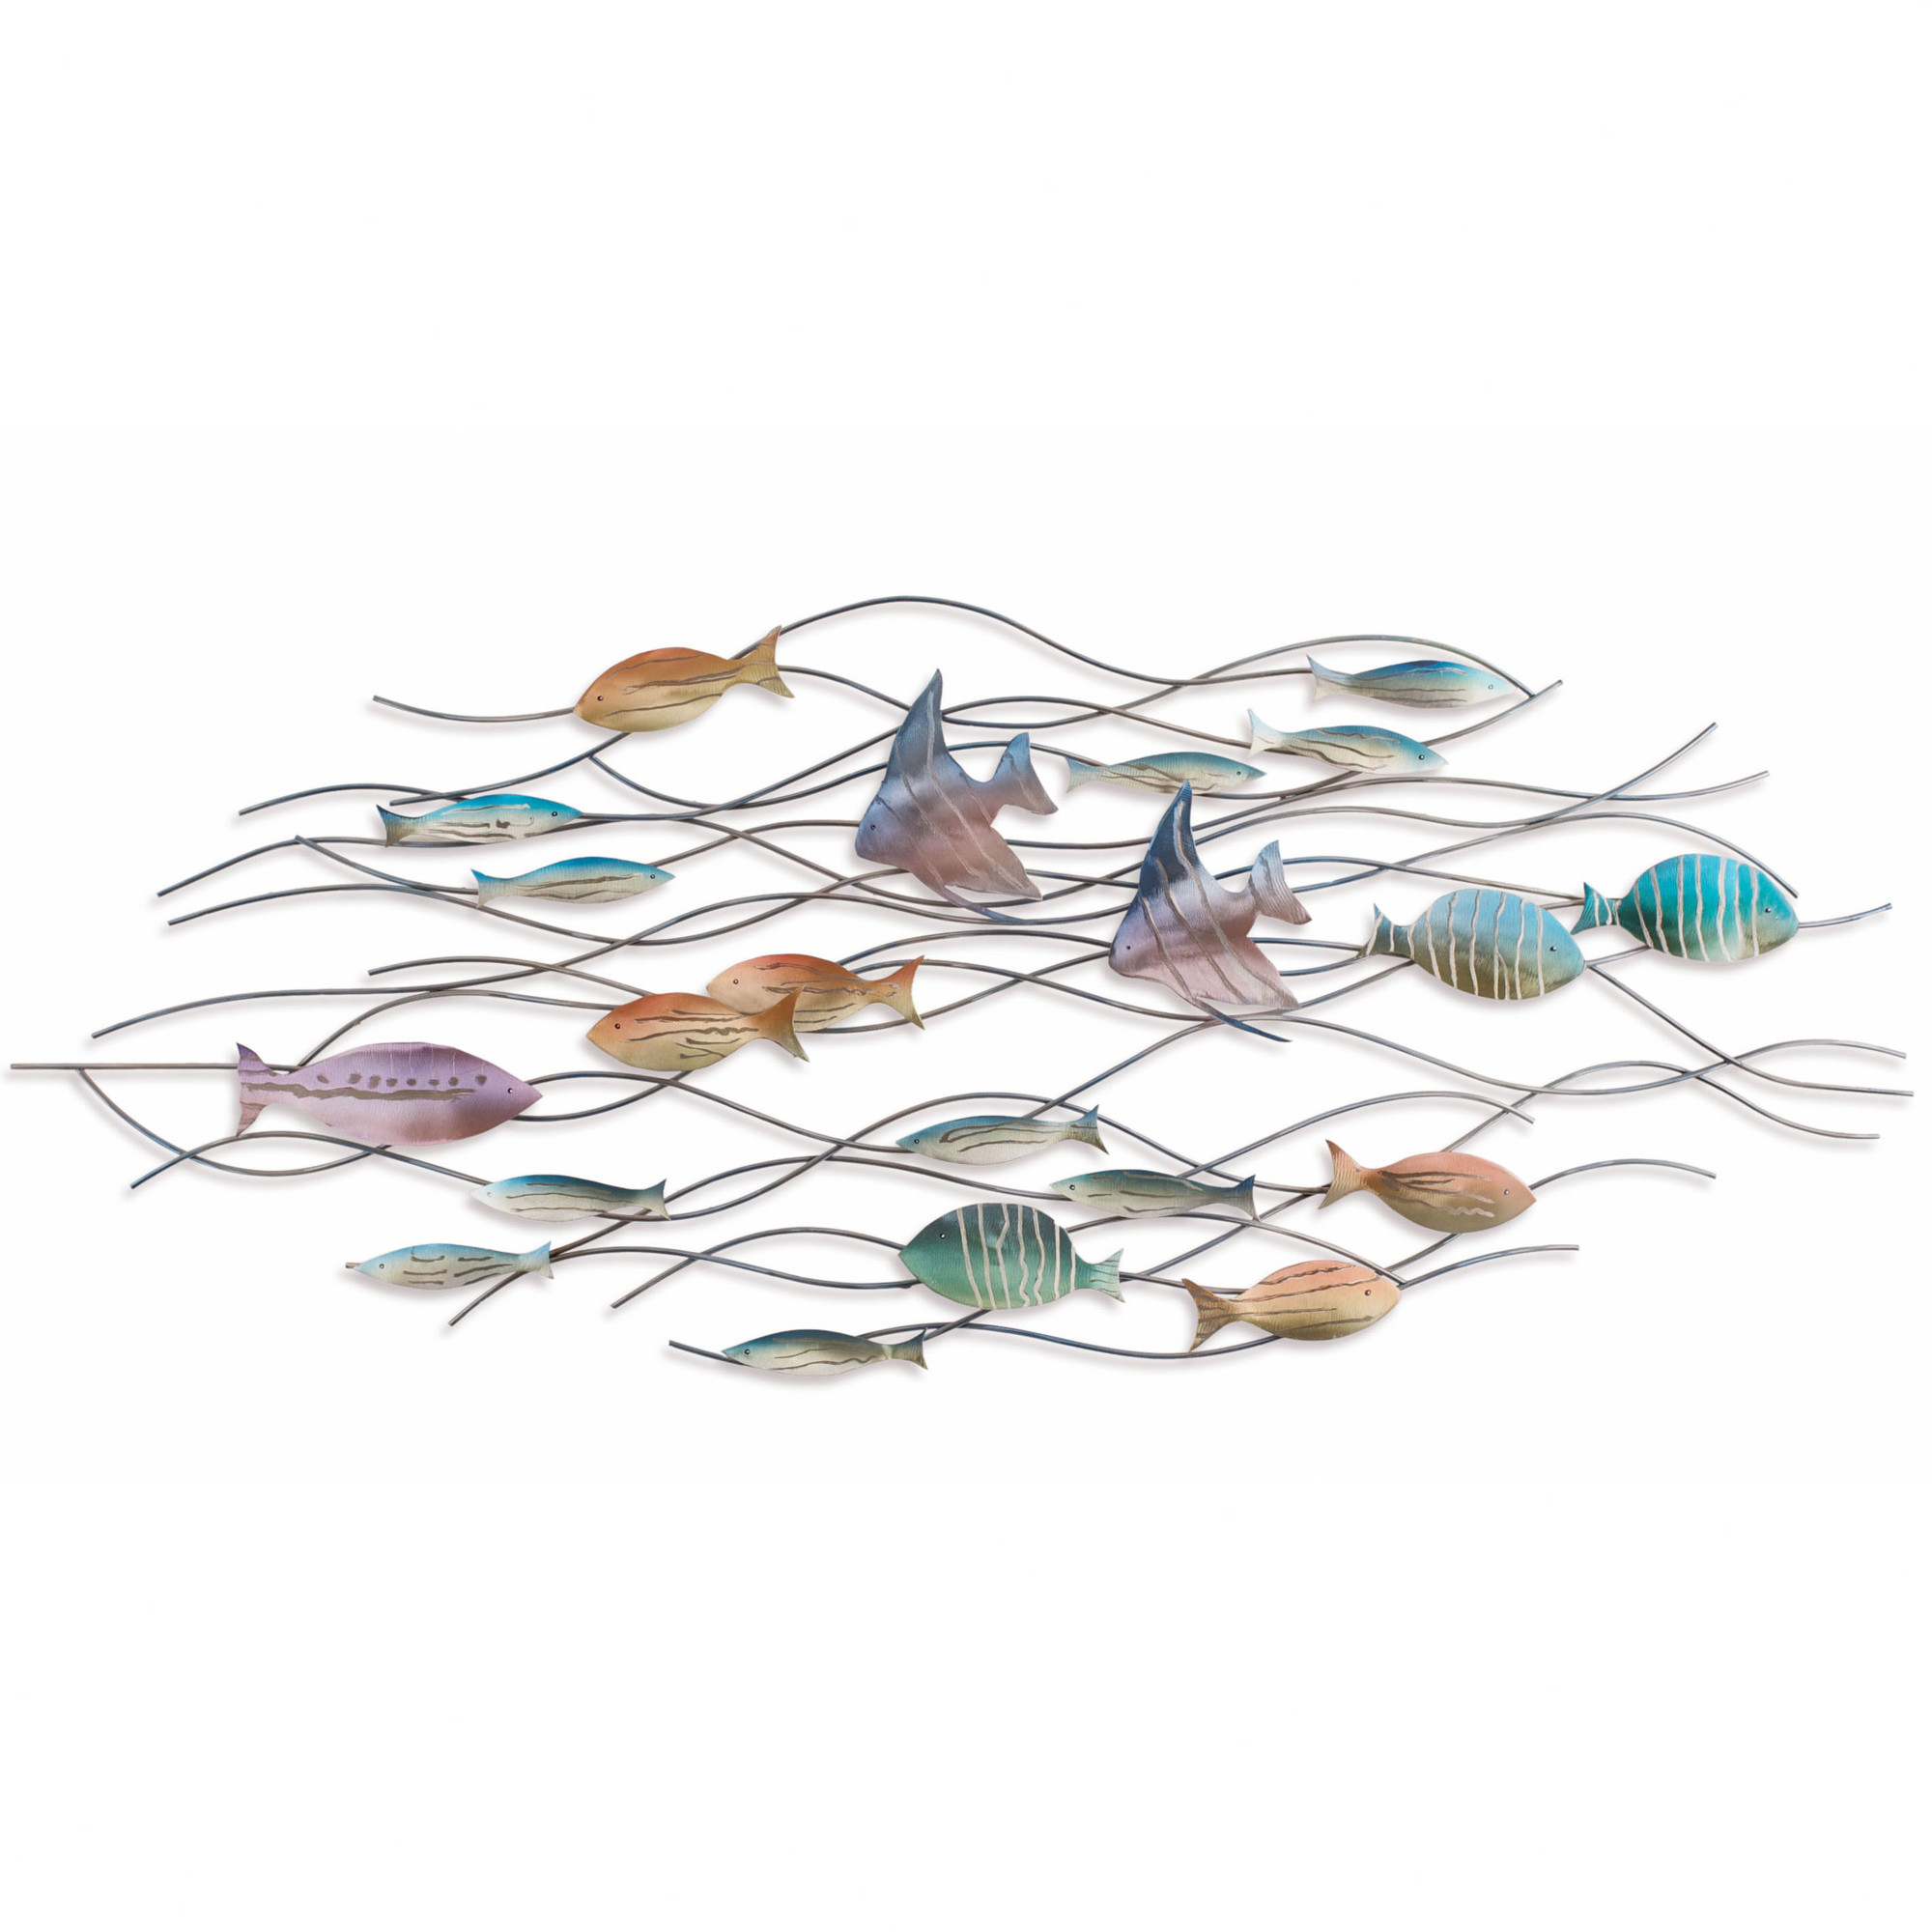 Large School Of Tropical Fish – Nautical Metal Wall Art In Favorite Coastal Metal Fish Wall Decor (View 5 of 20)